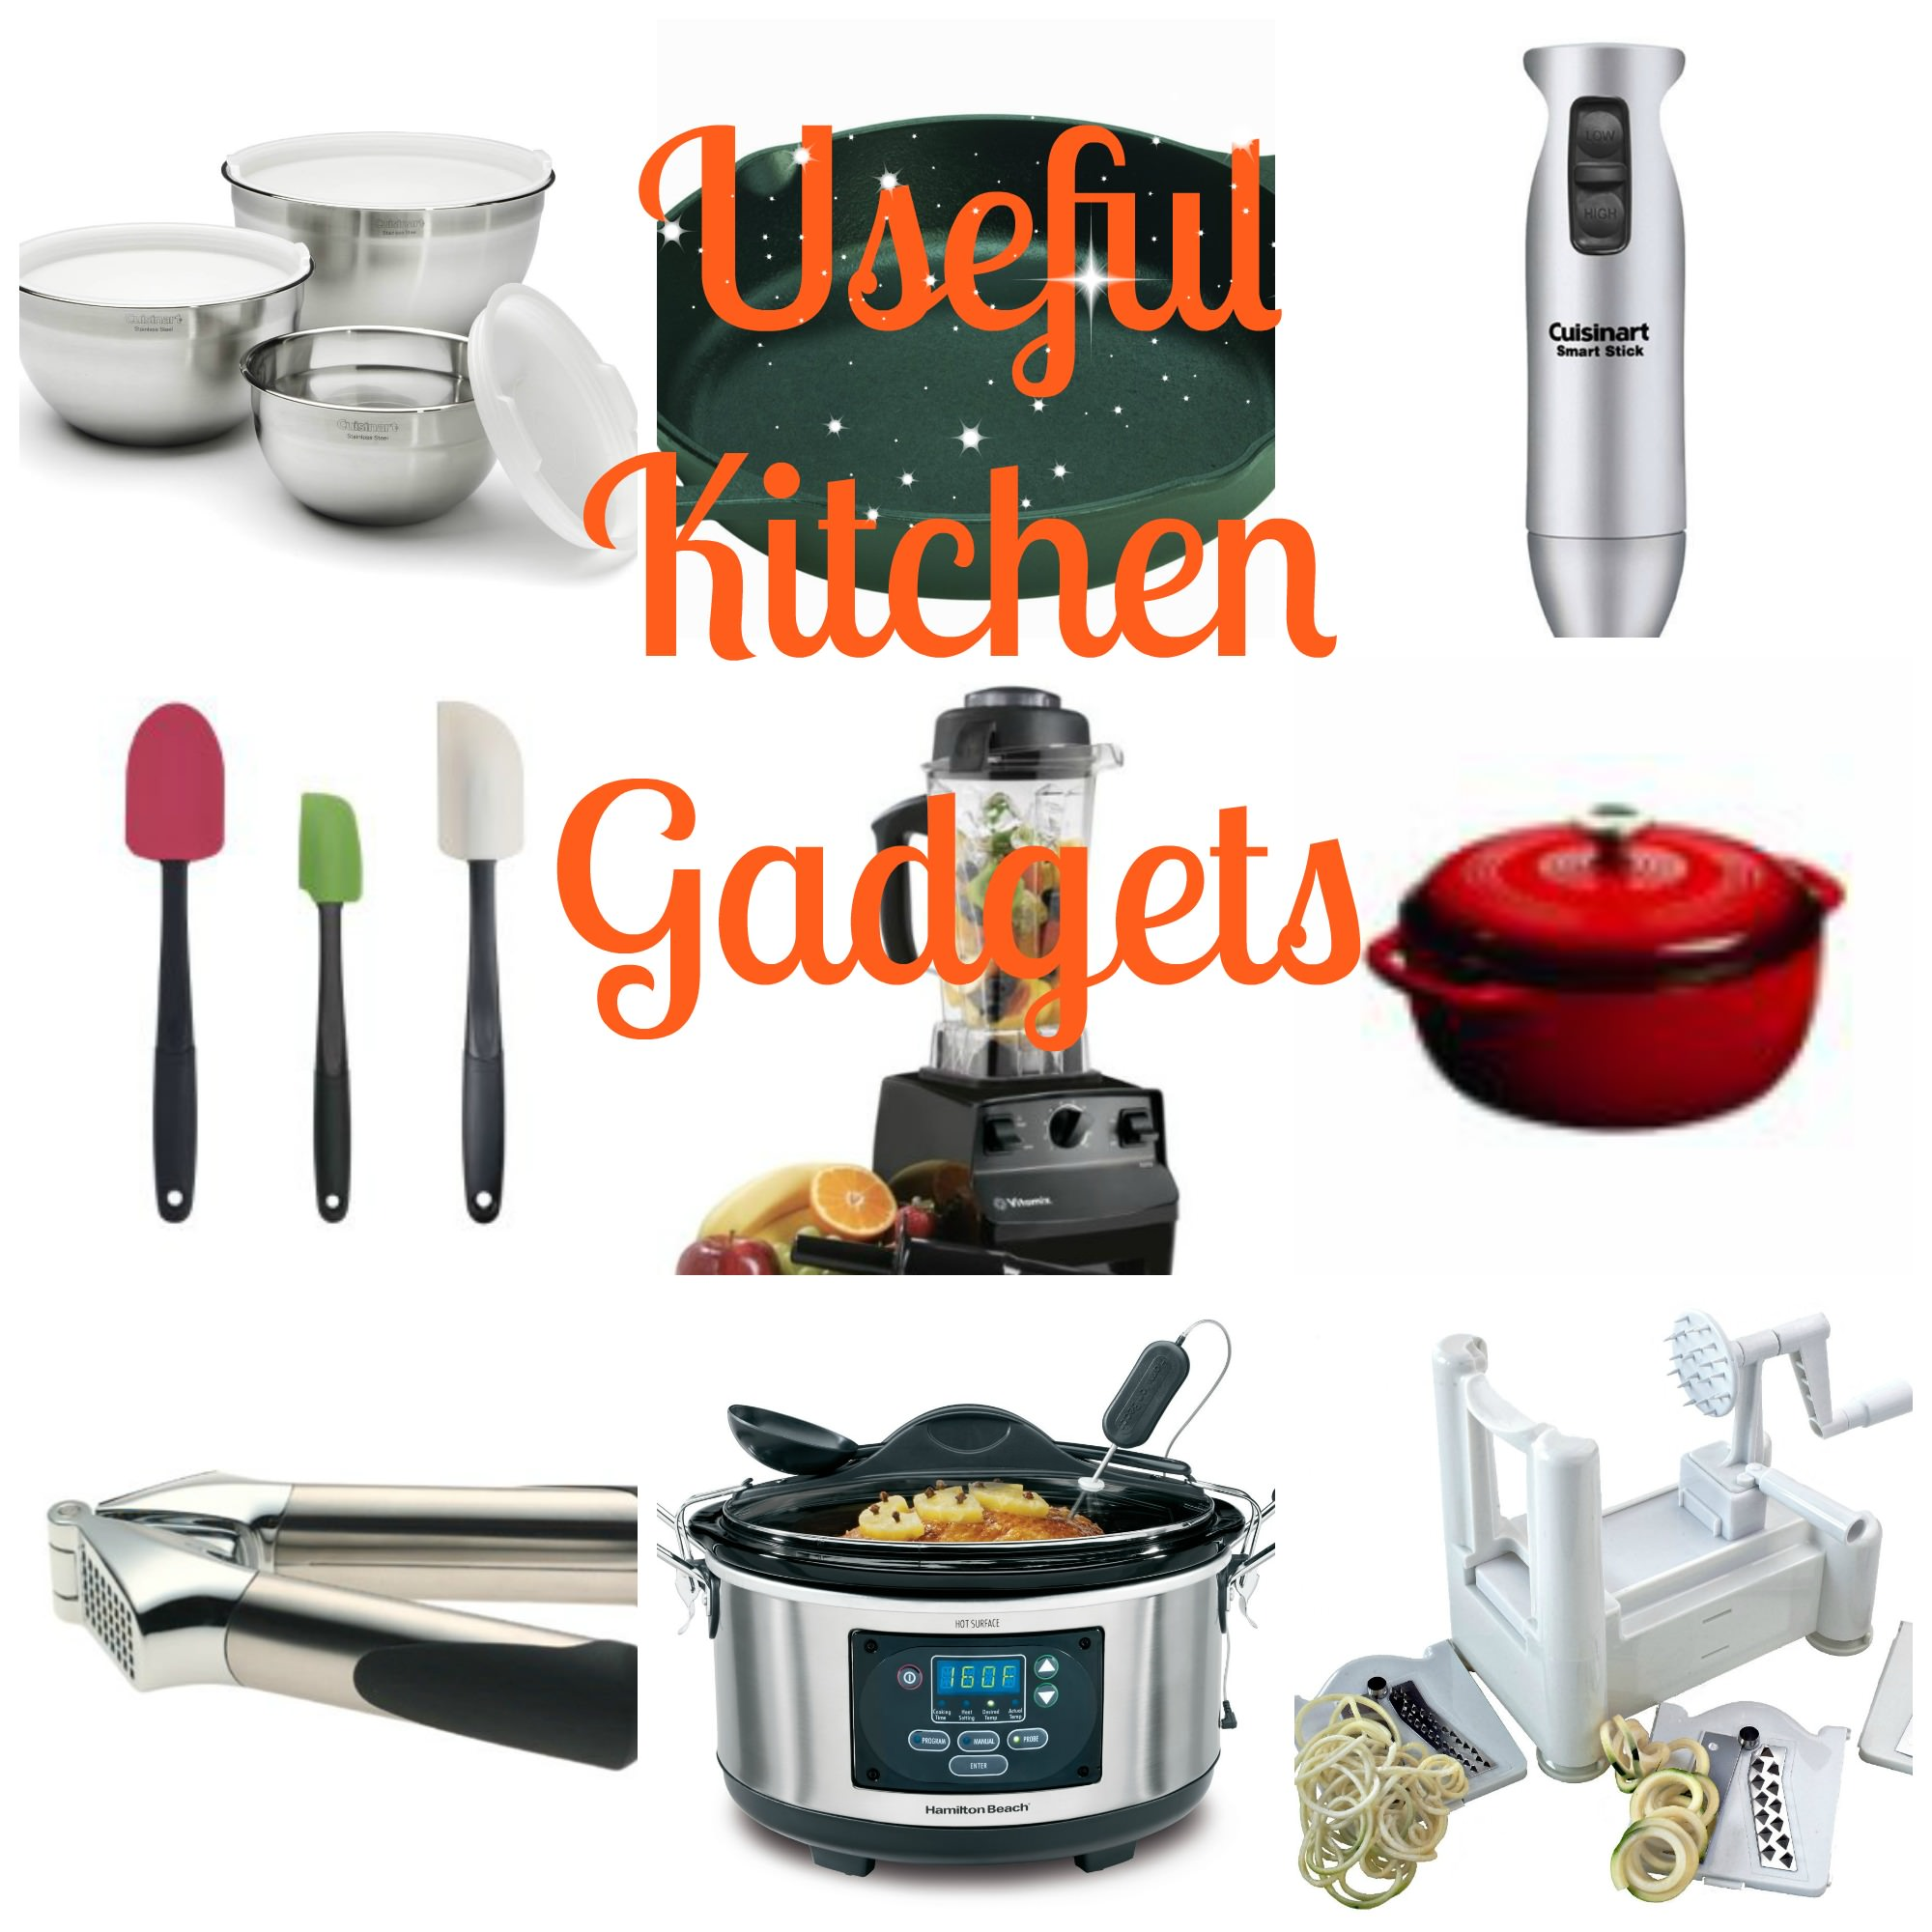 Kitchen Cooking Gadgets The Cooking Class Files Part 4 Useful Kitchen Gadgets